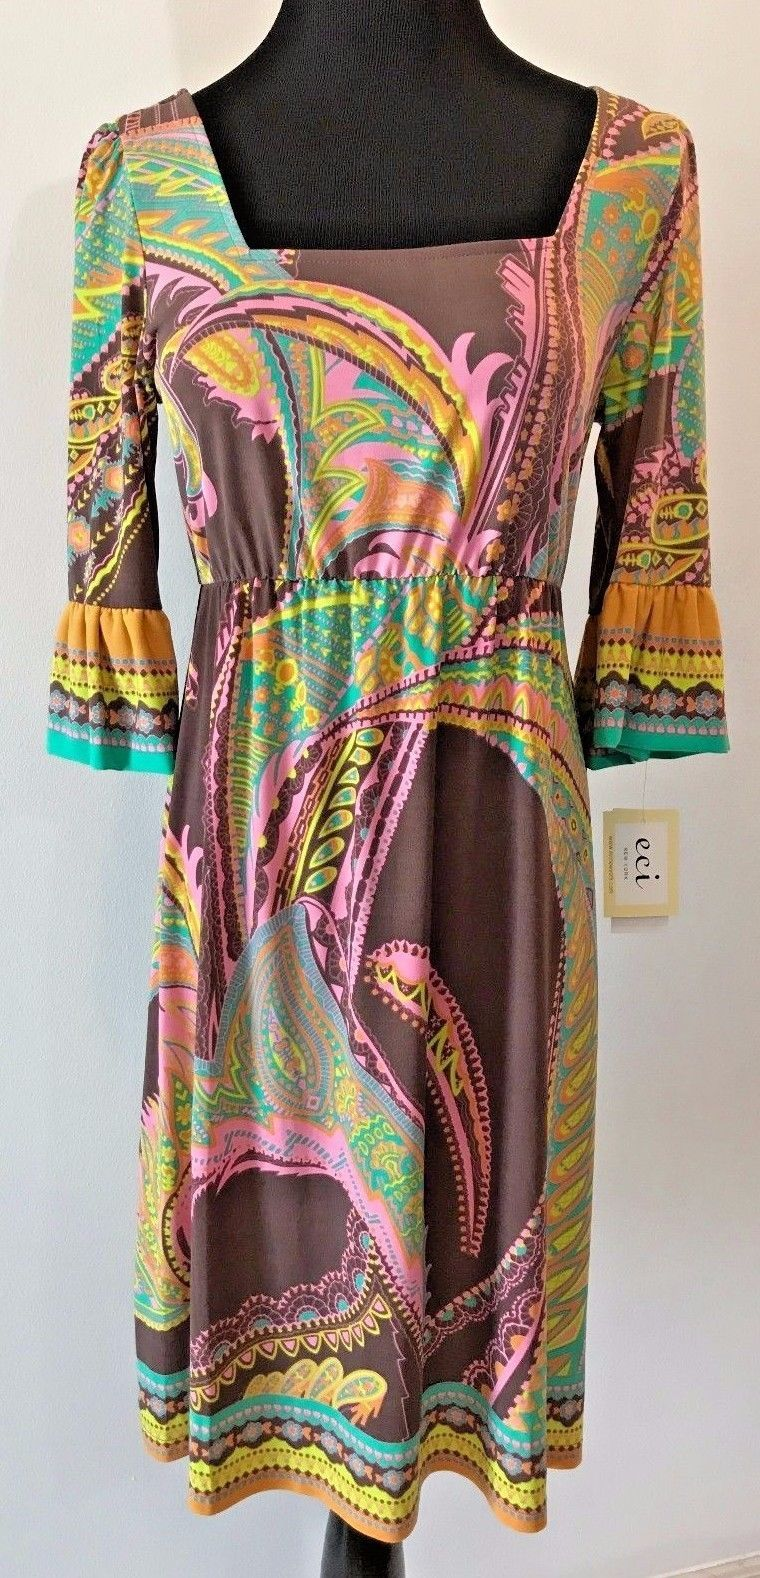 aaa6dc8295 S l1600. S l1600. Previous. ECI New York Brown Pink Multicolor Square Neck  Stretch Dress size 6 ...